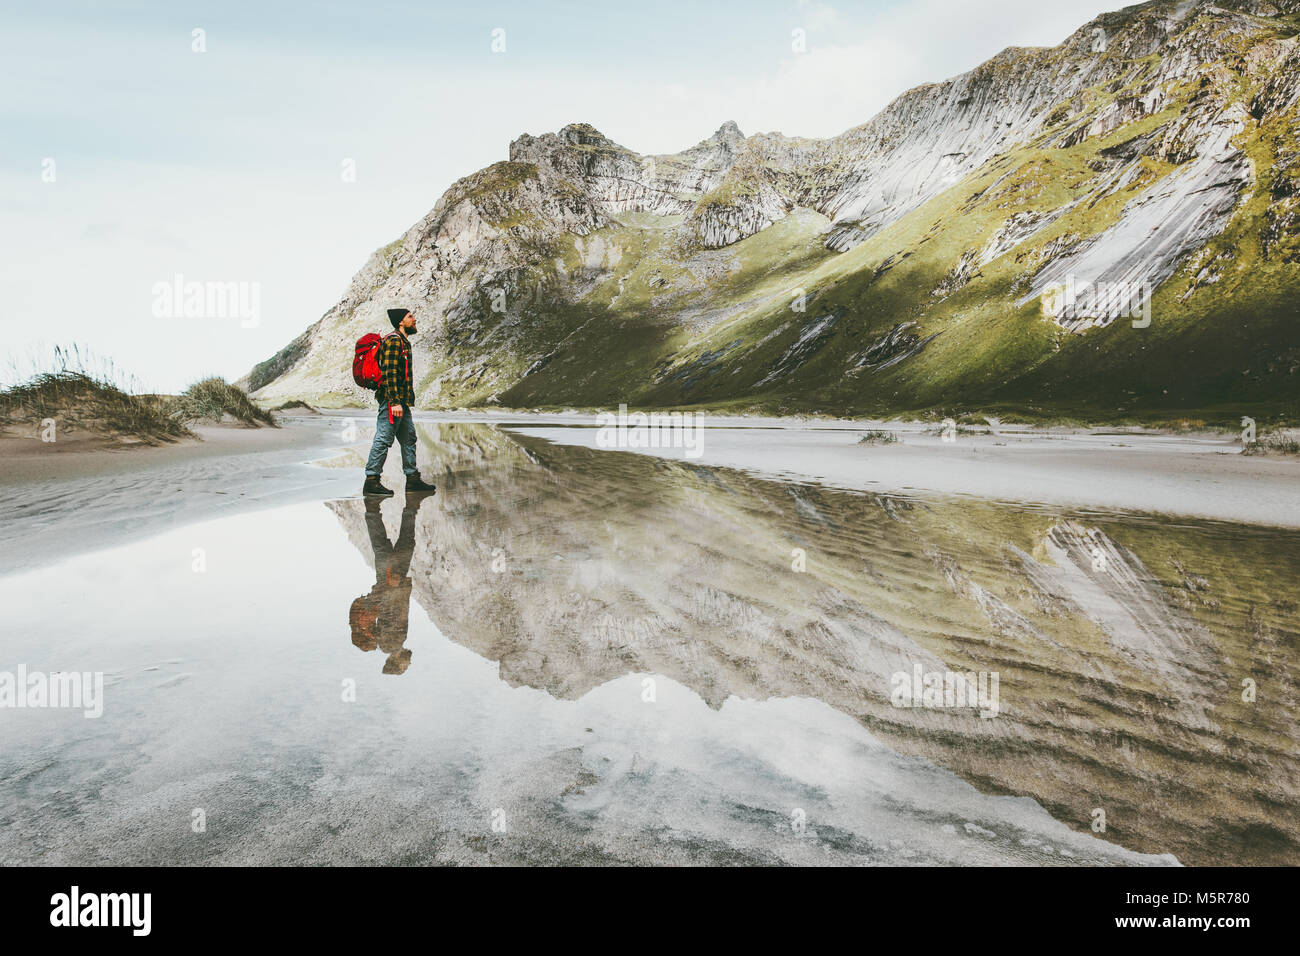 Man walking alone at sandy beach in mountains Travel lifestyle emotional concept adventure outdoor summer vacations - Stock Image